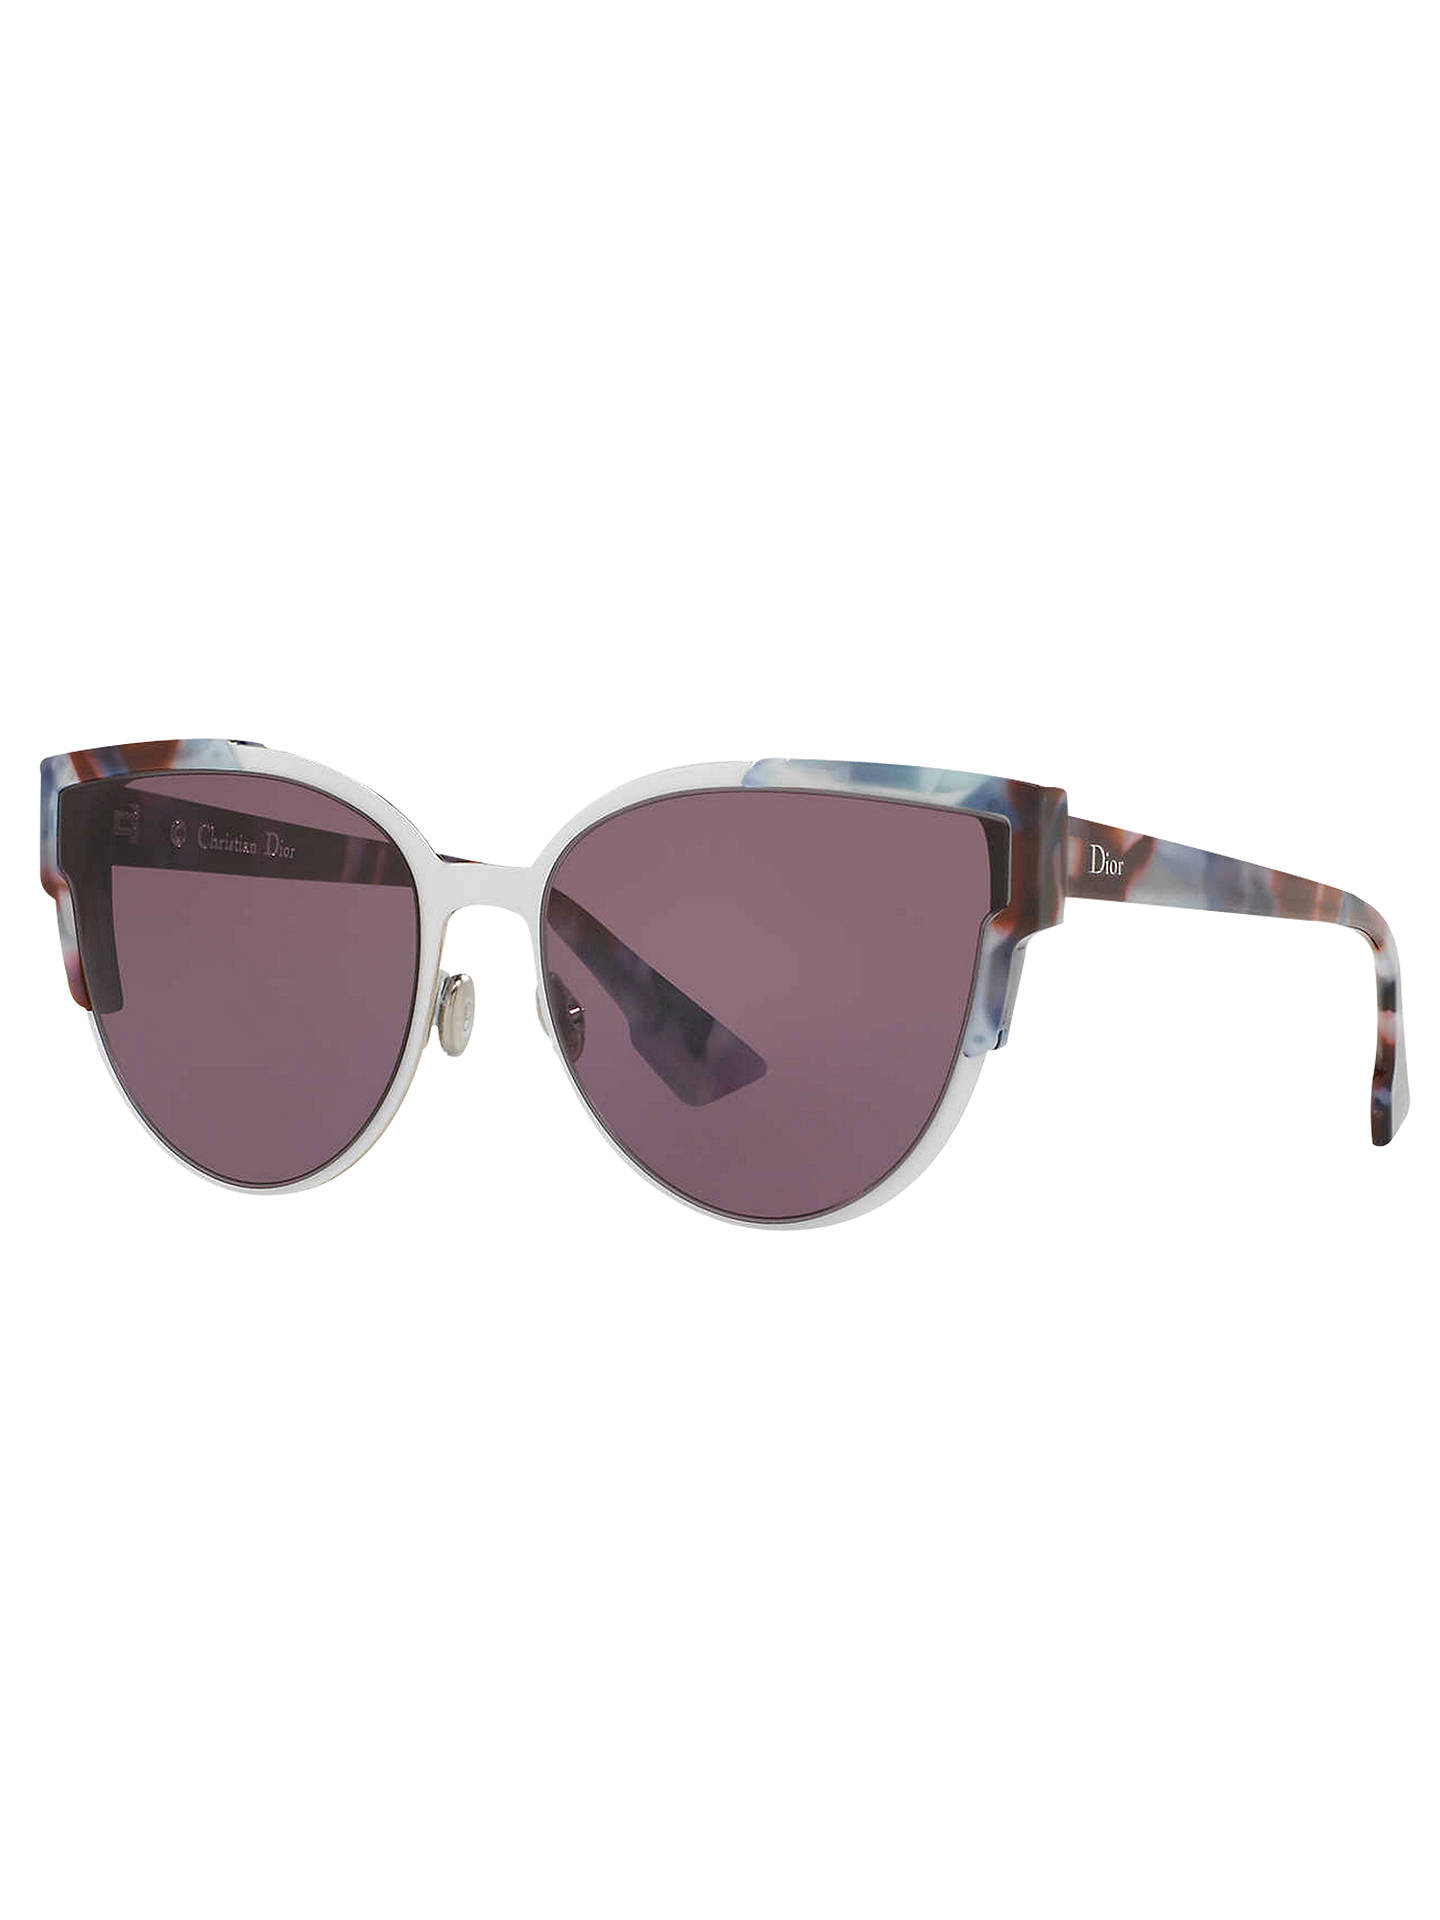 5bc3df282404 Dior Wildlydior Cat s Eye Sunglasses at John Lewis   Partners